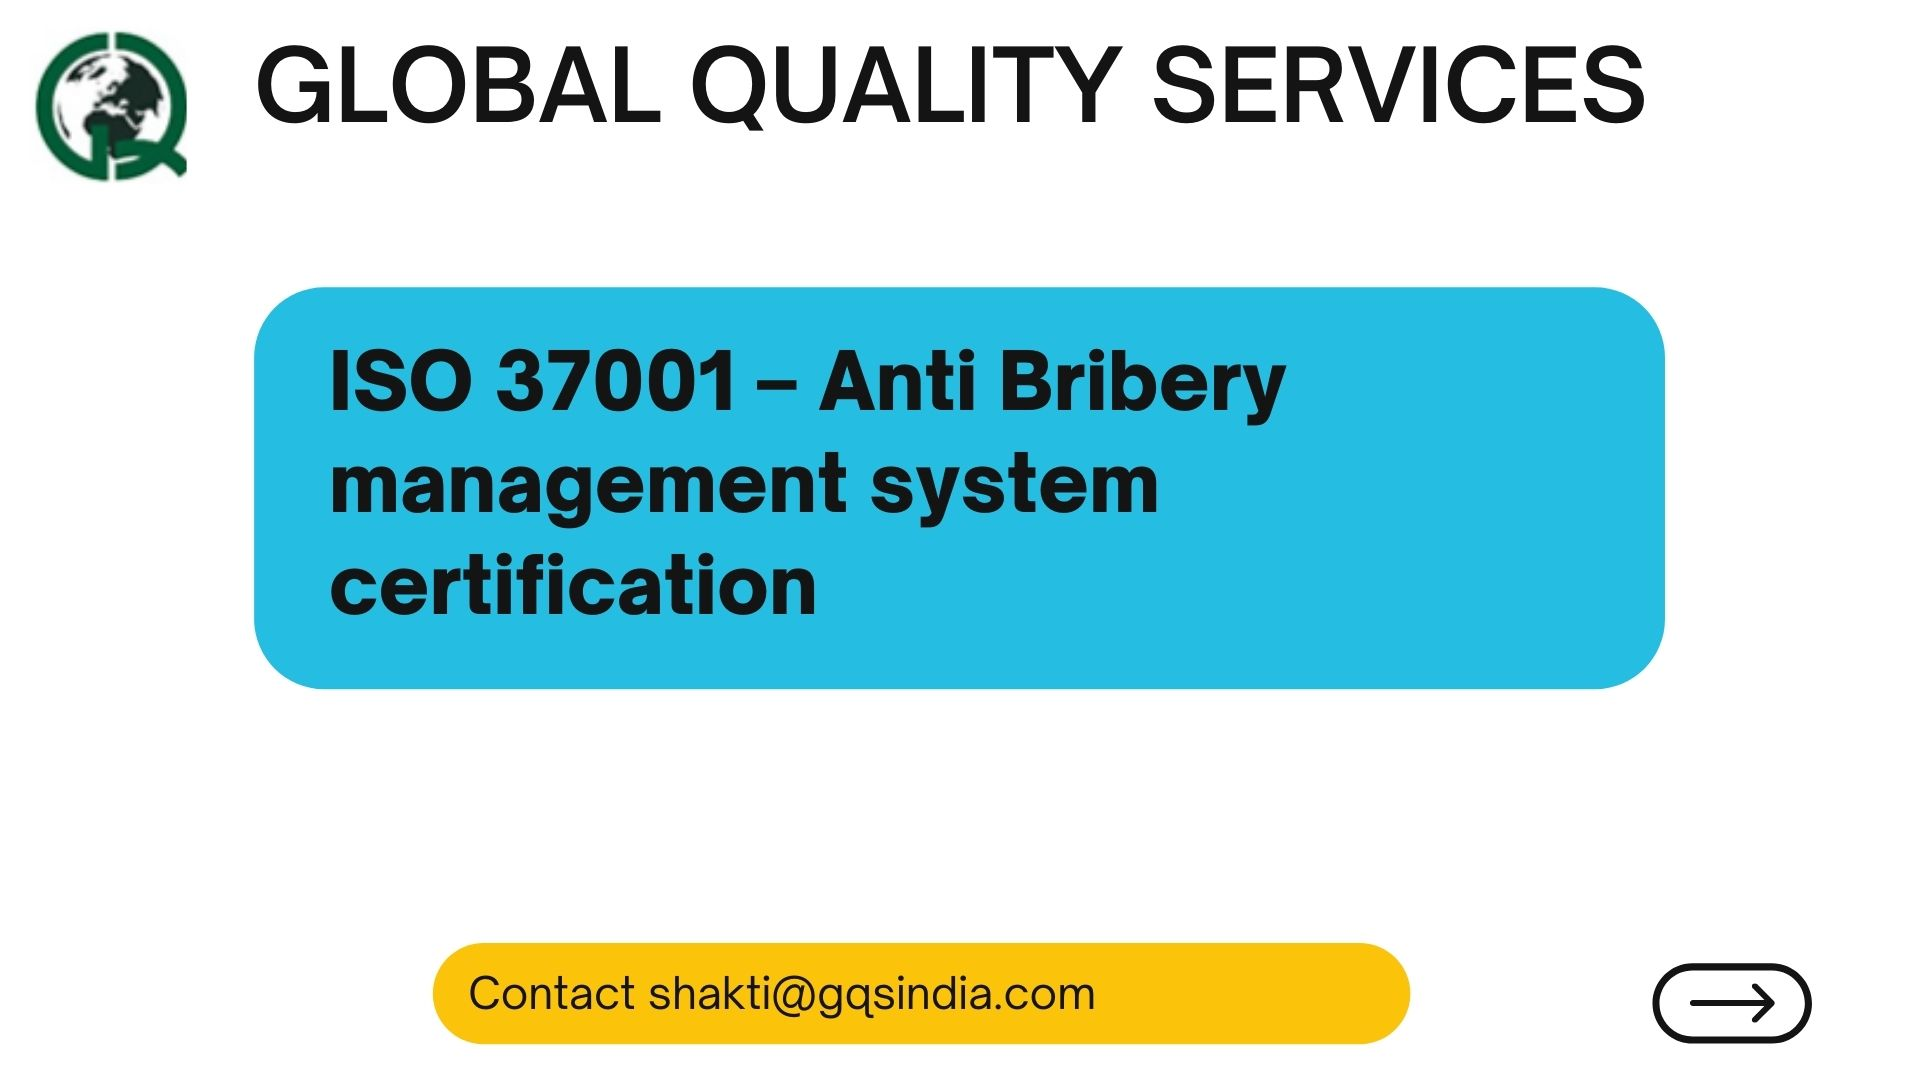 ISO 37001 – Anti Bribery management system certification (1)